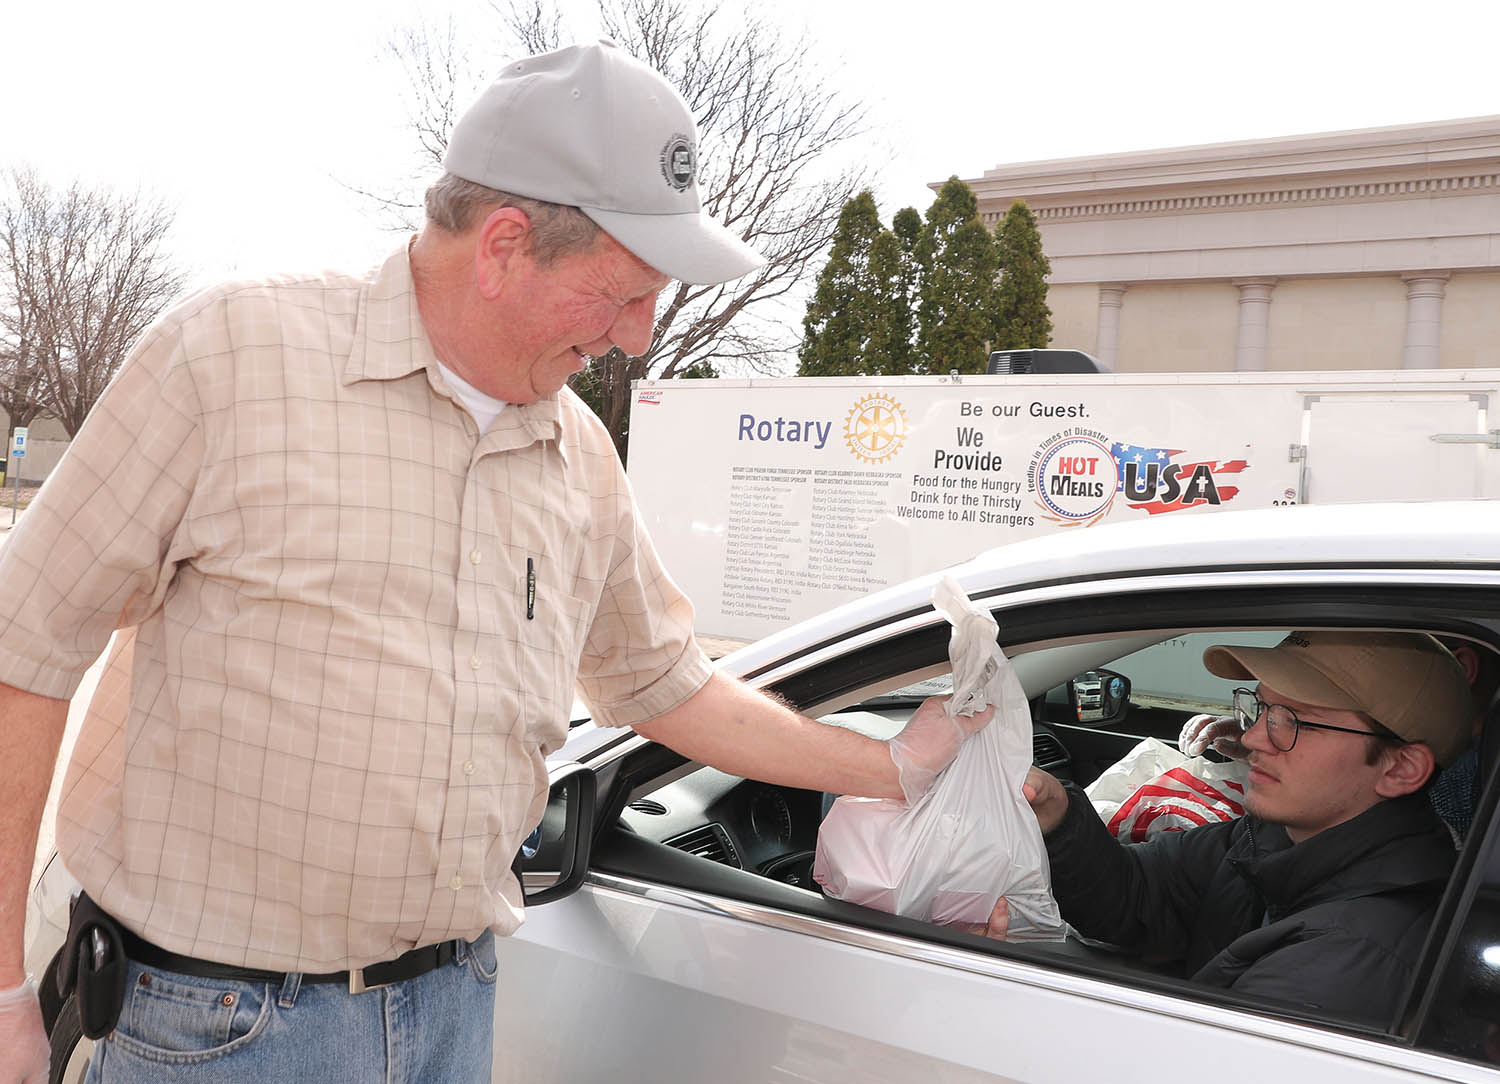 Hot Meals USA founder and director Dick Cochran, left, hands a meal delivery to UNK wrestler Walker Johnson on Tuesday. UNK wrestlers and coaches are volunteering with the local nonprofit, which is providing free meals to people impacted by the ongoing coronavirus (COVID-19) pandemic.